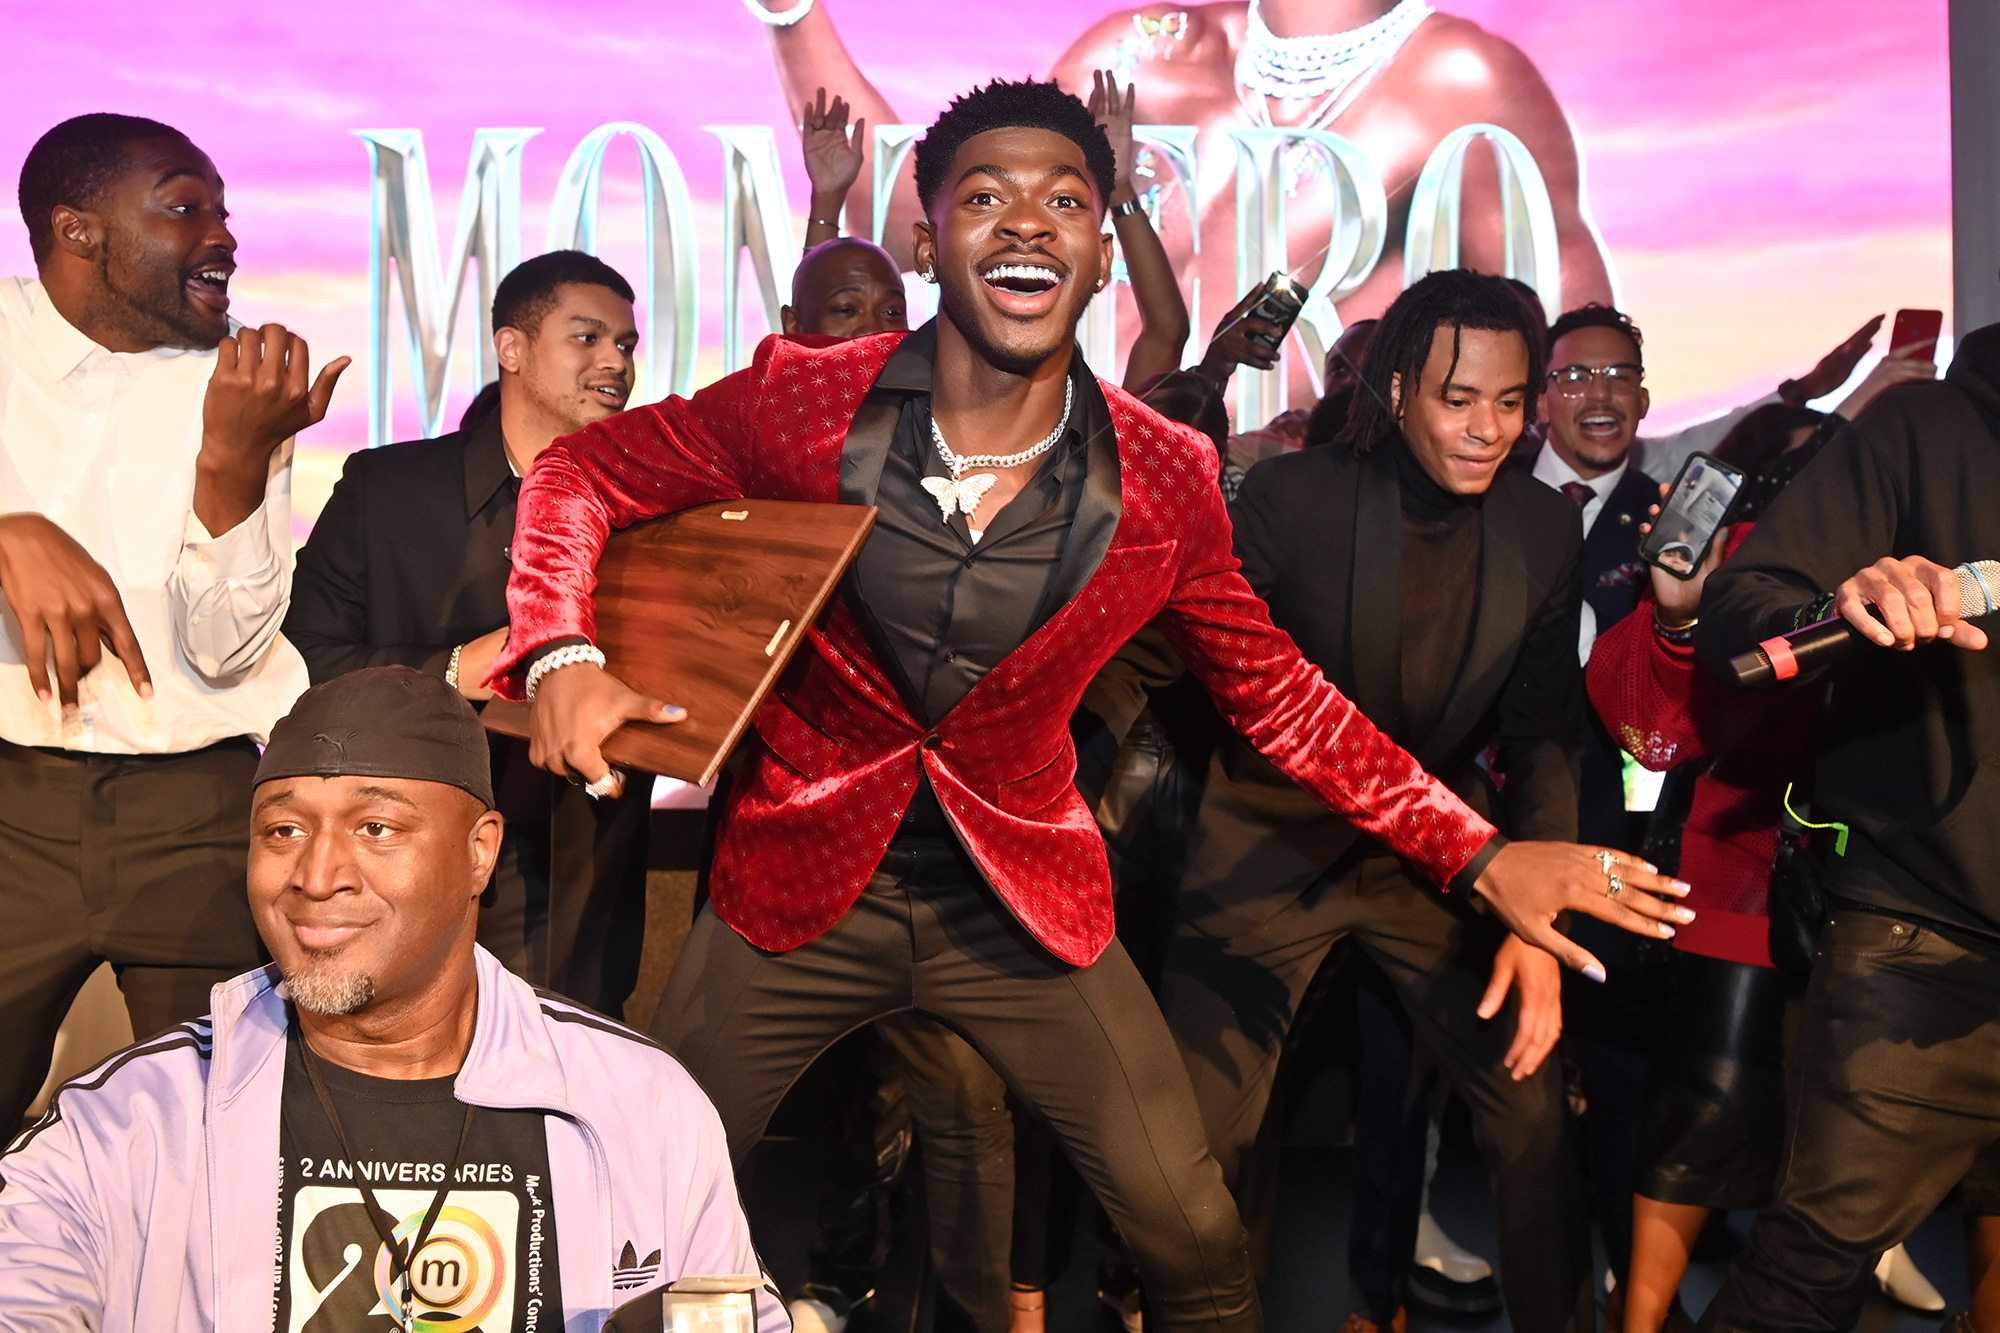 Lil Nas x and Dallas Austin attend BMI Presents A Night With Lil Nas X Awards dinner at The Gathering Spot on October 20, 2021 in Atlanta, Georgia